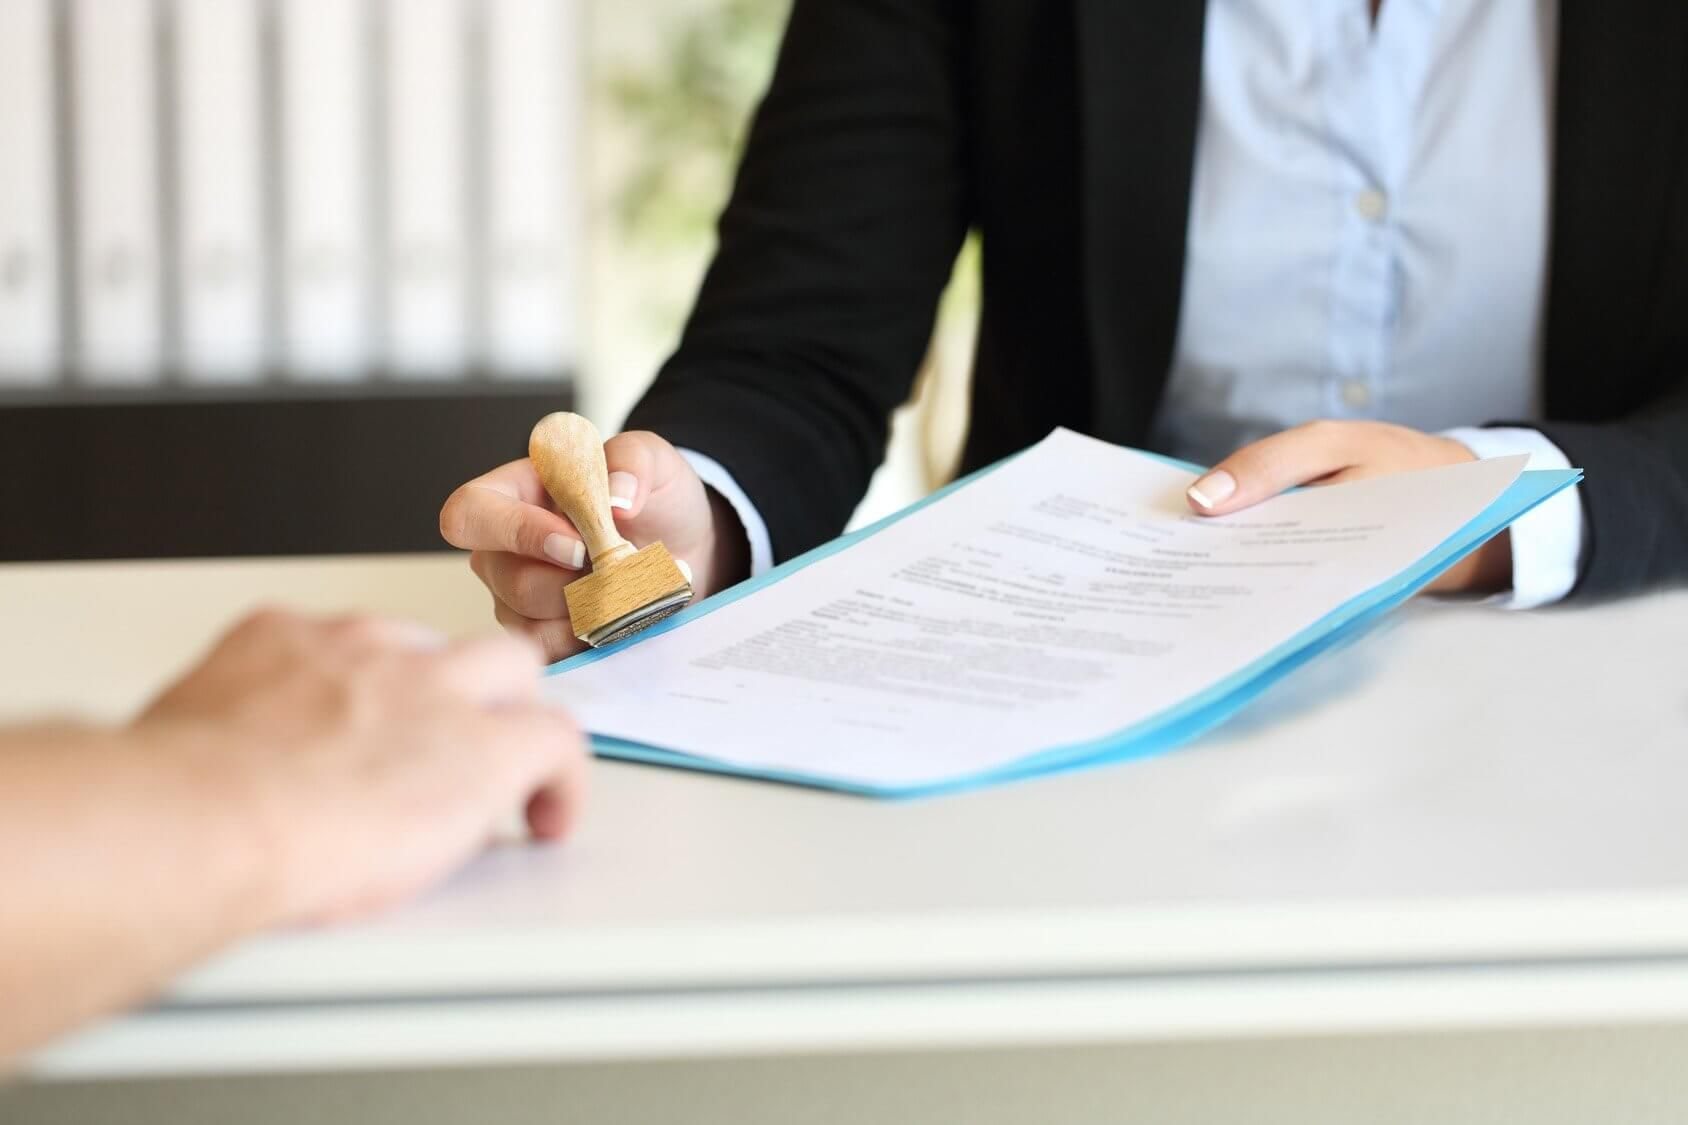 Apostille Texas provides expedited same business day Texas